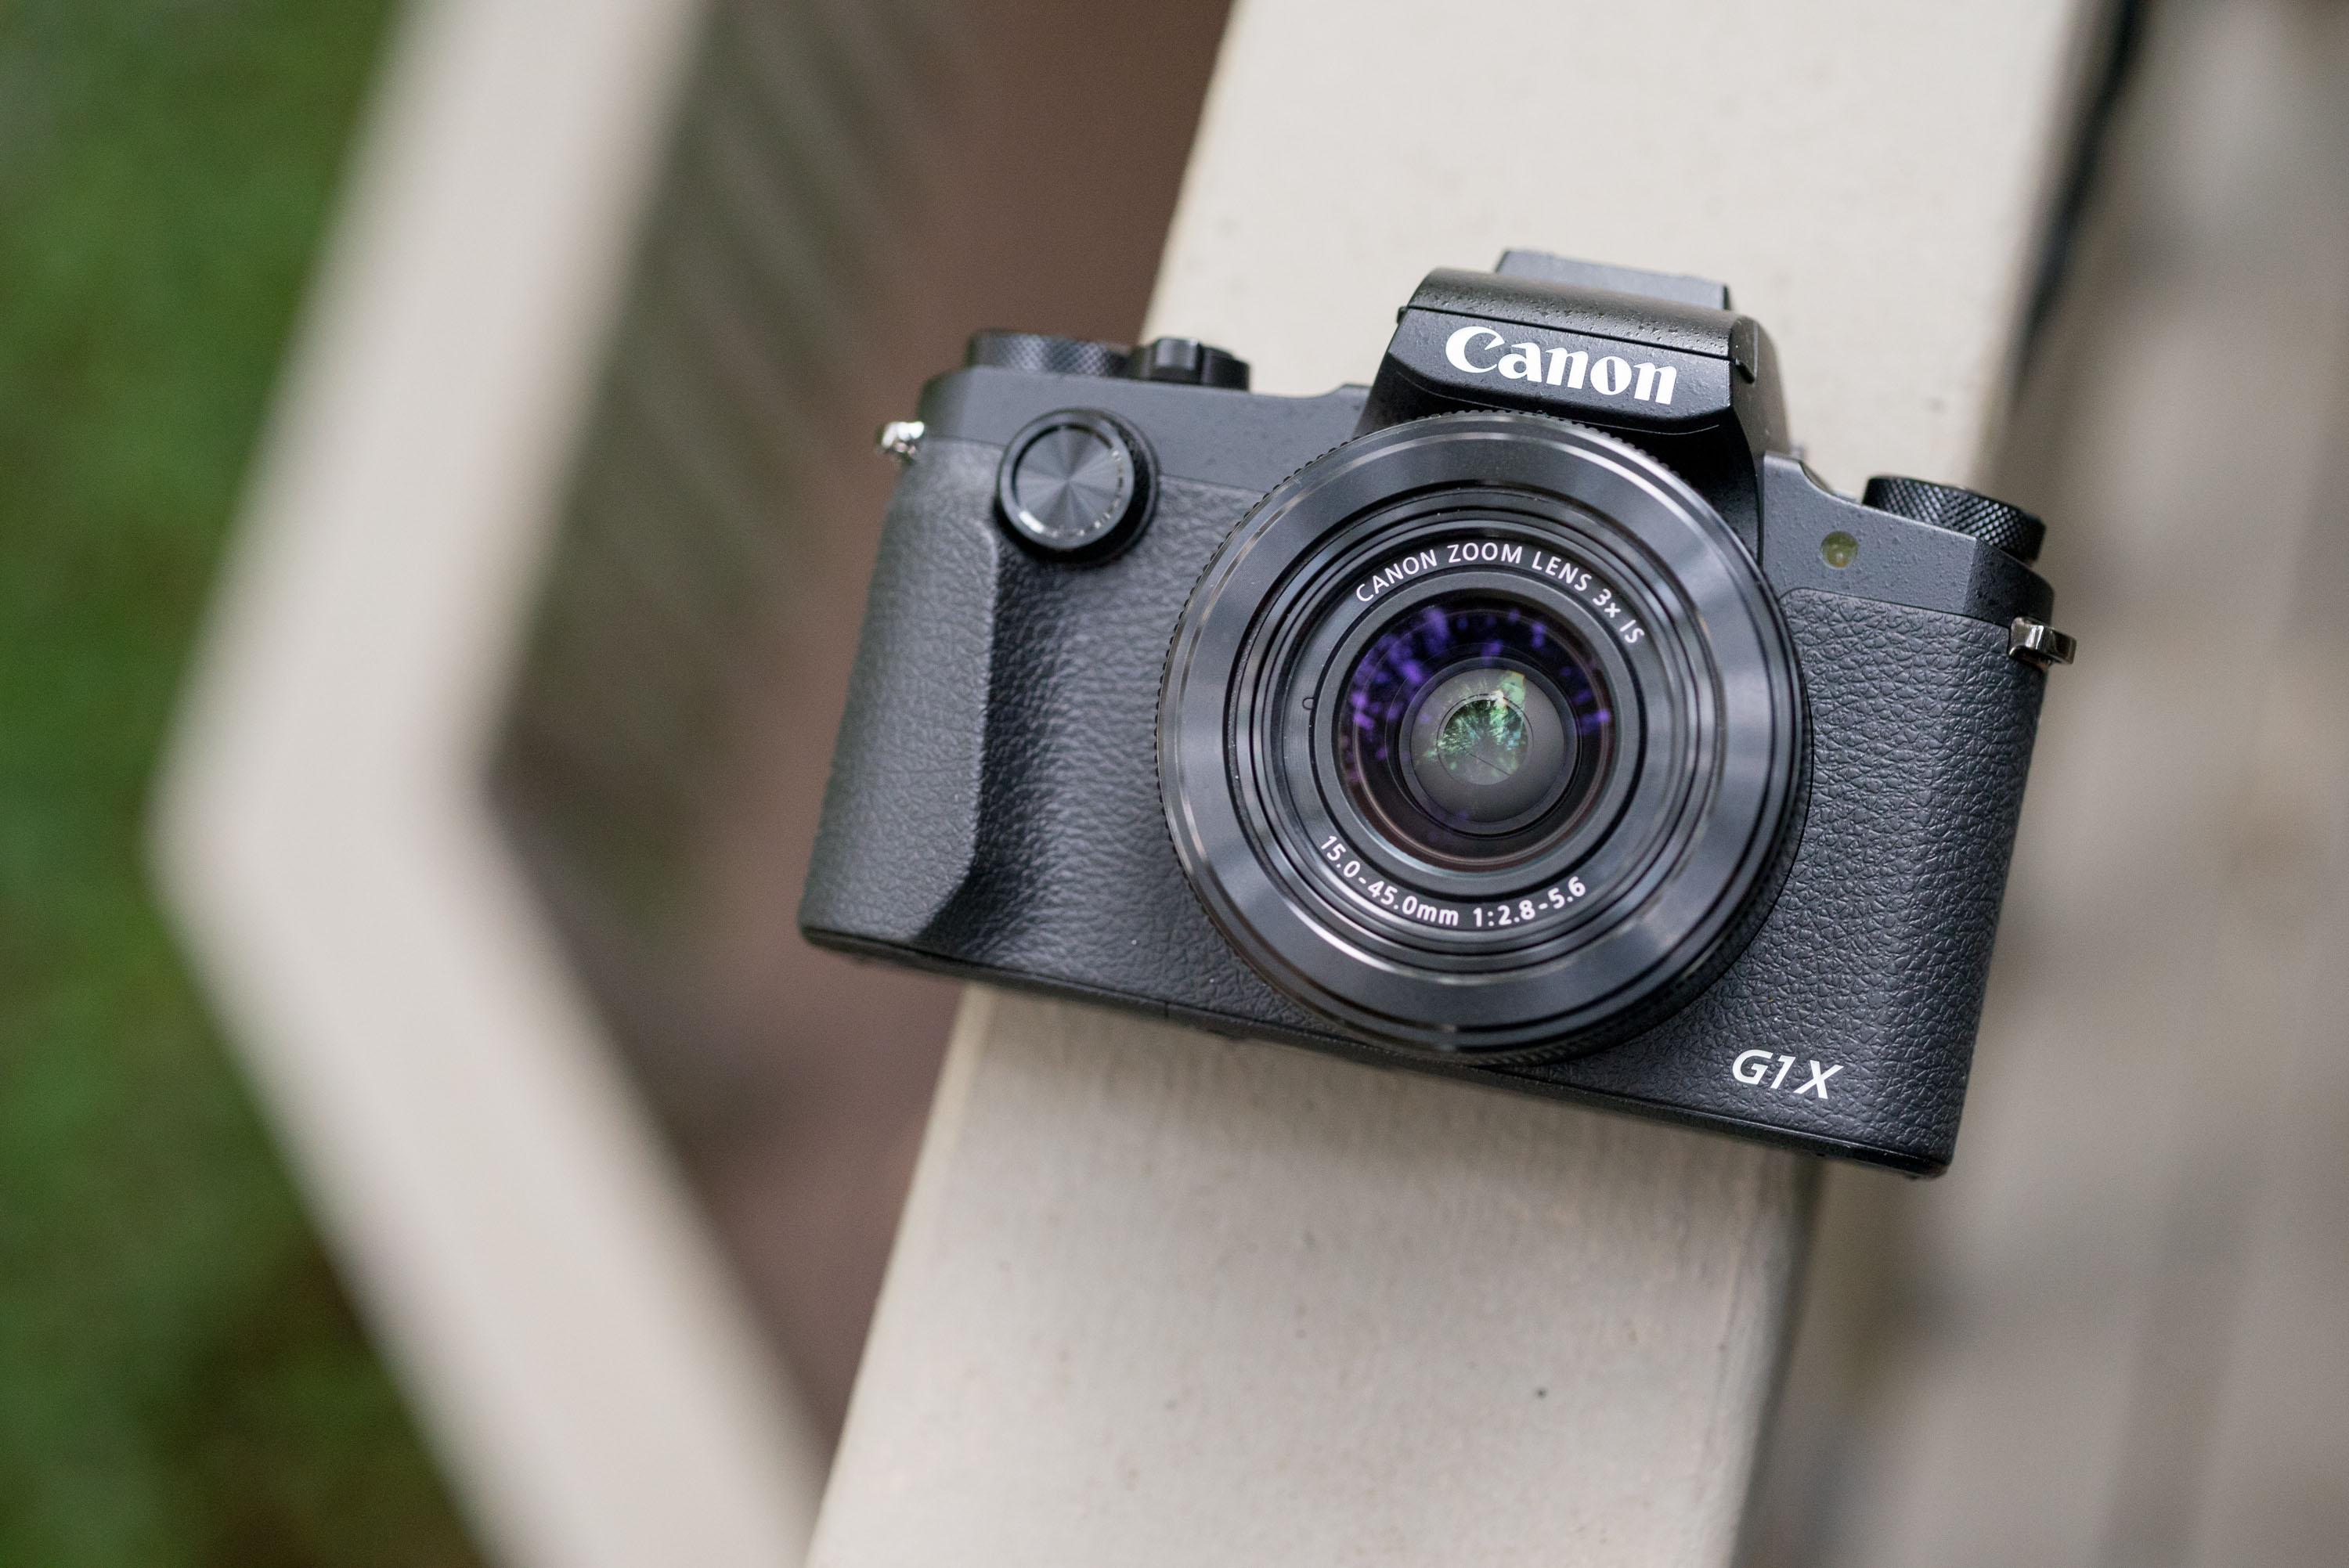 Canon PowerShot G1 X Mark III review: Digital Photography Review